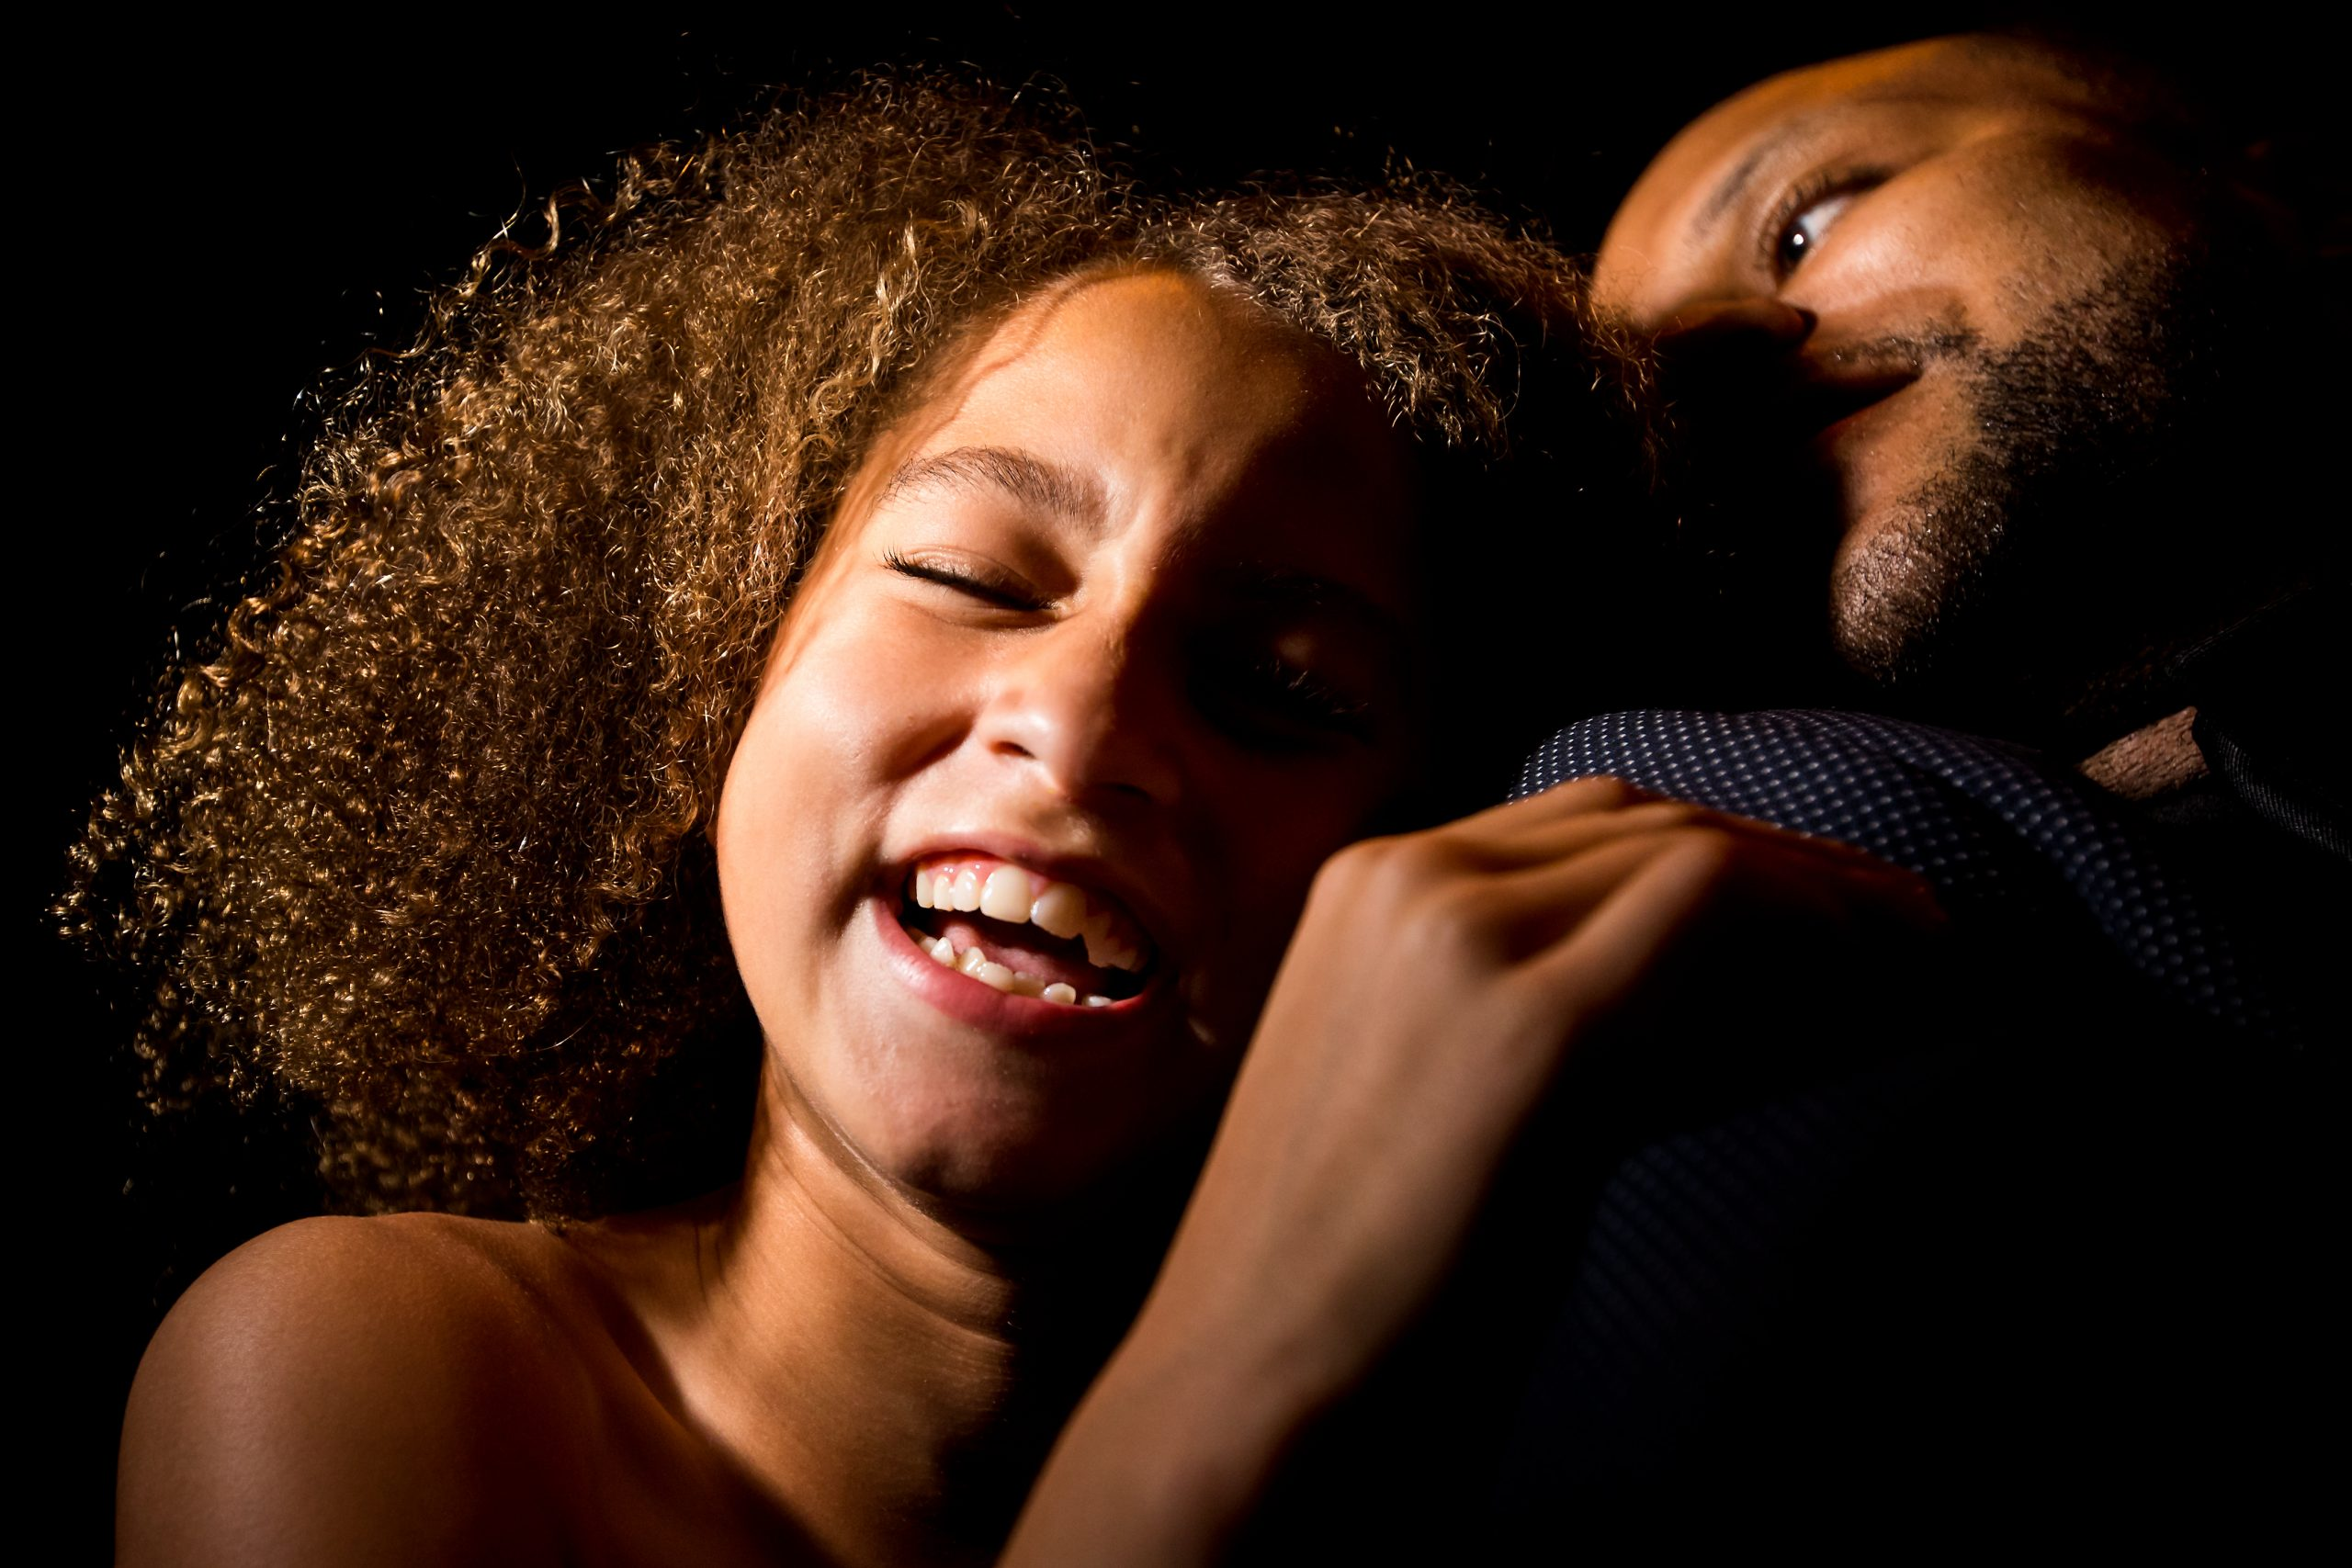 A laughing girl rests her head on a guest's shoulder